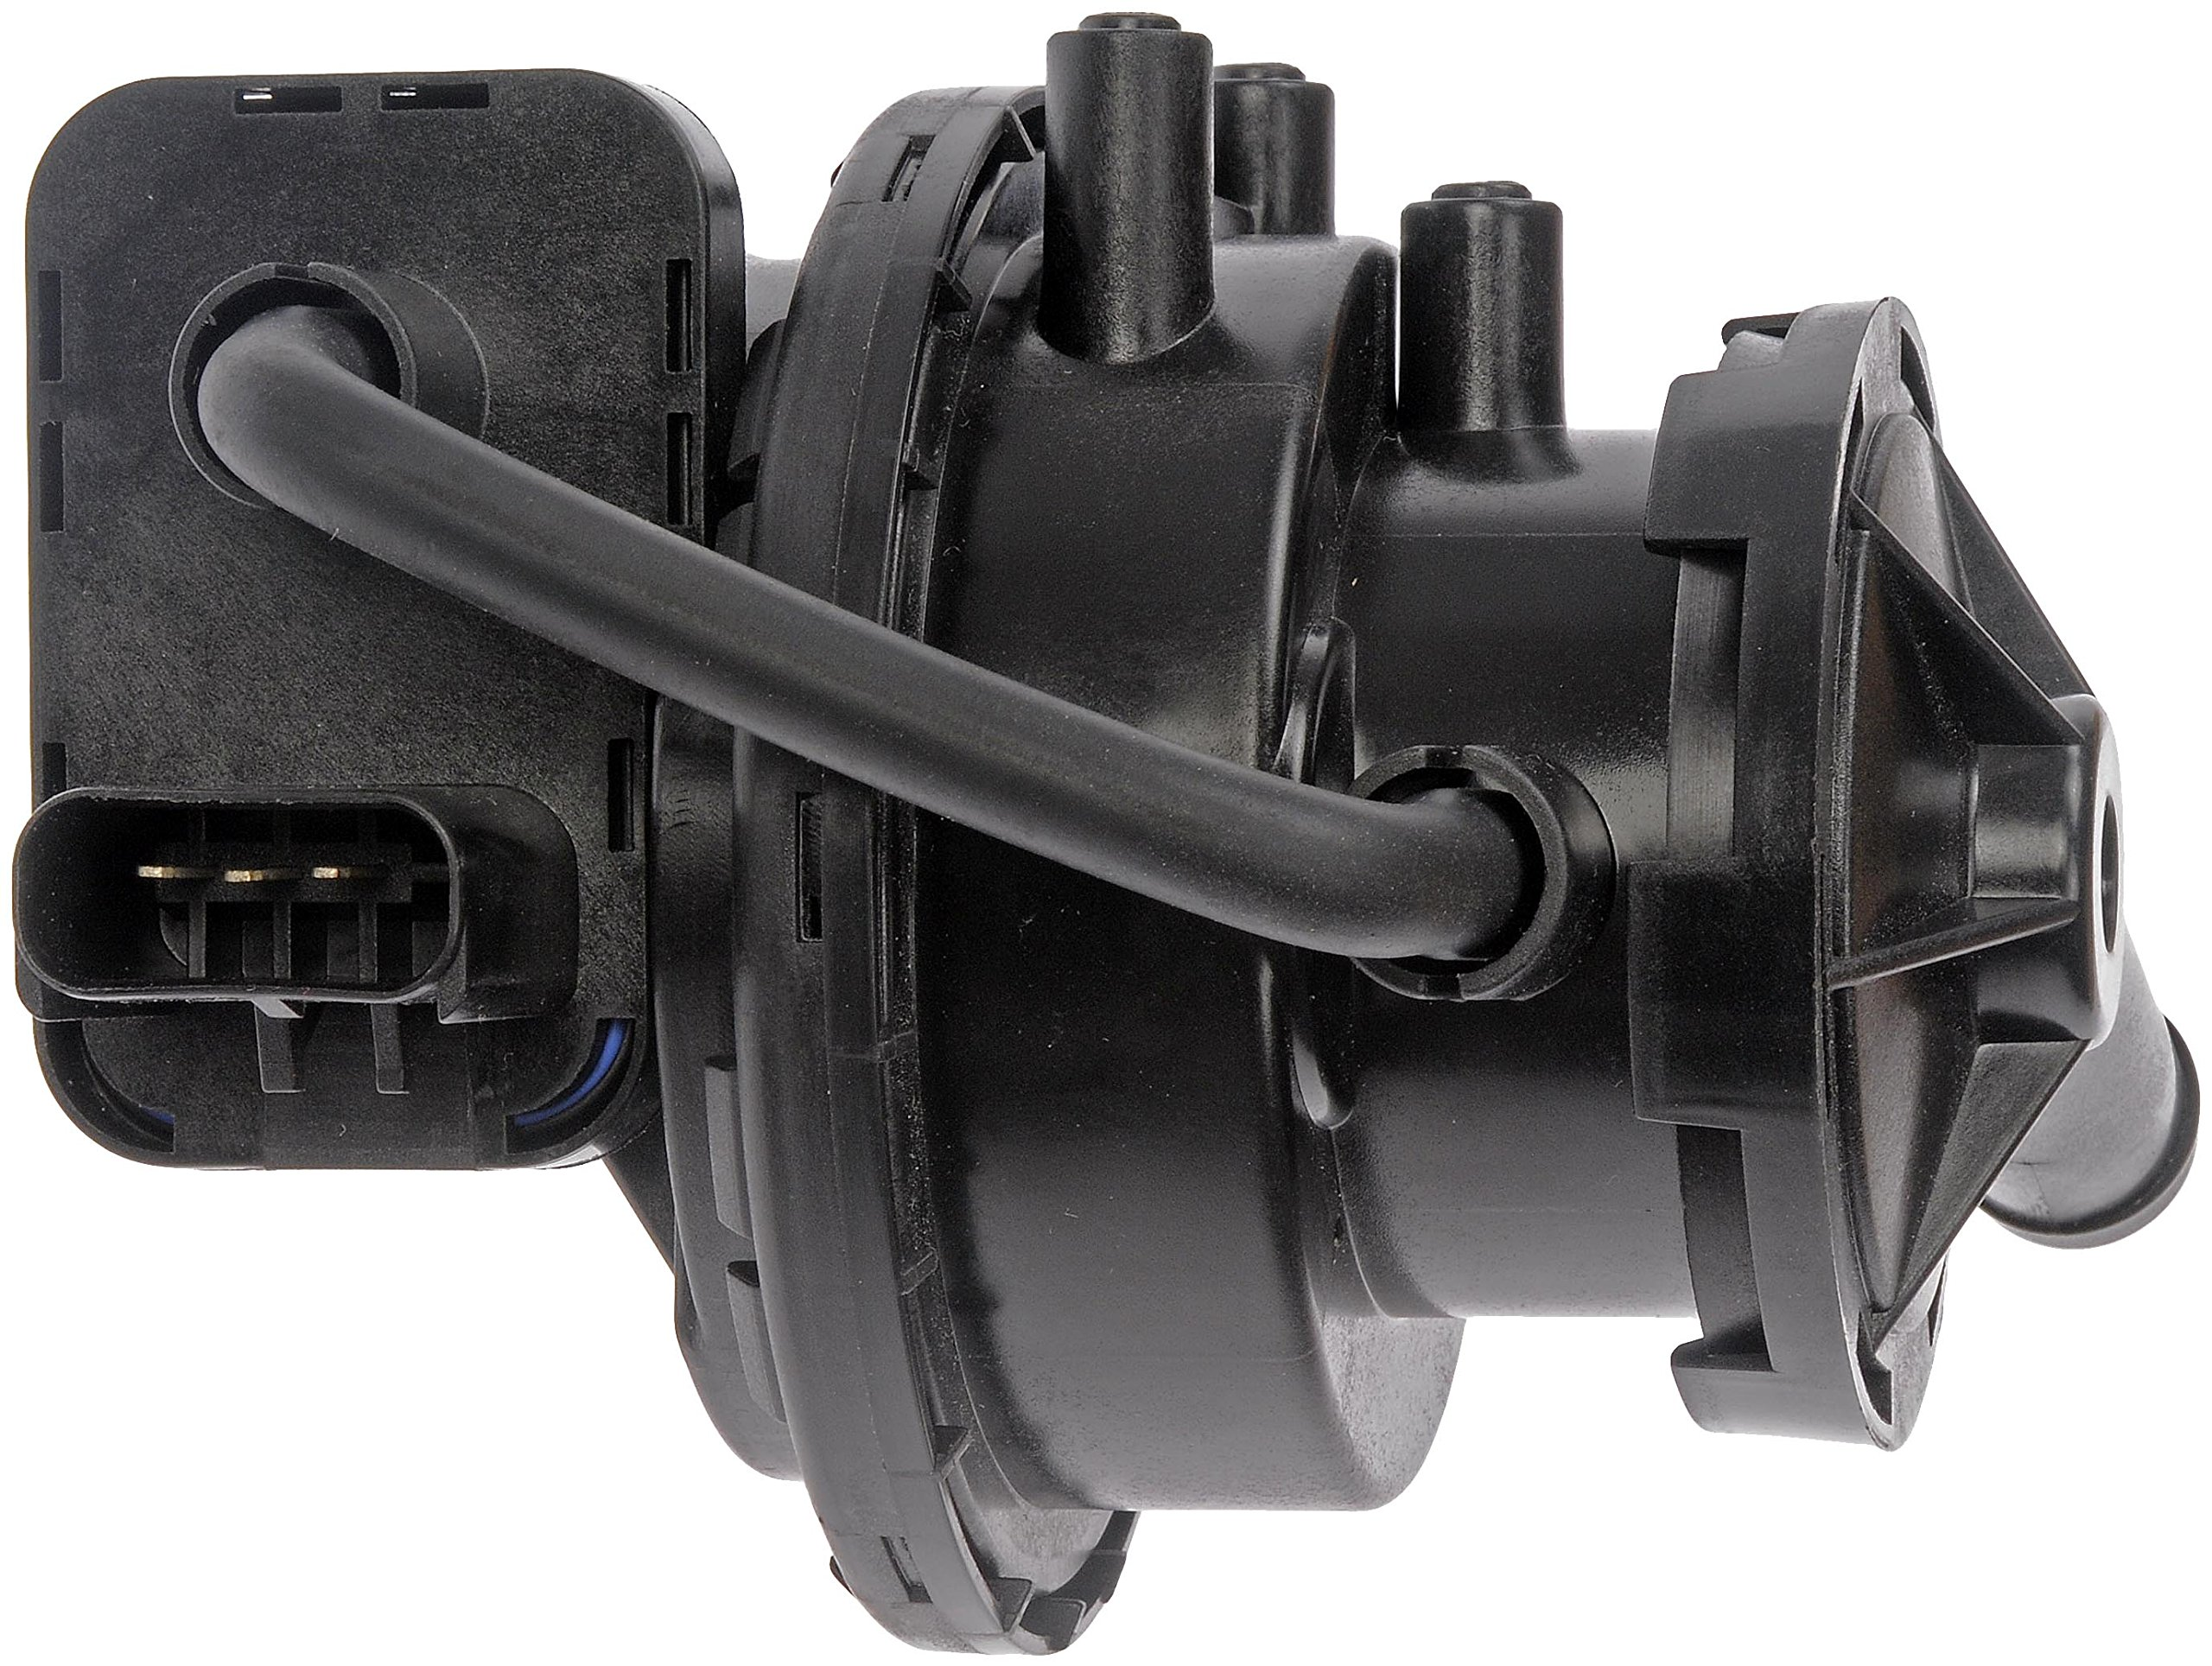 APDTY 113763 Leak Detection Pump Fits Select 96-03 Chrysler Jeep Match Vehicle To Compatability Chart To Ensure Exact Fitment; Replaces 4891416AB, 4891416AD Plymouth Vehicles Dodge